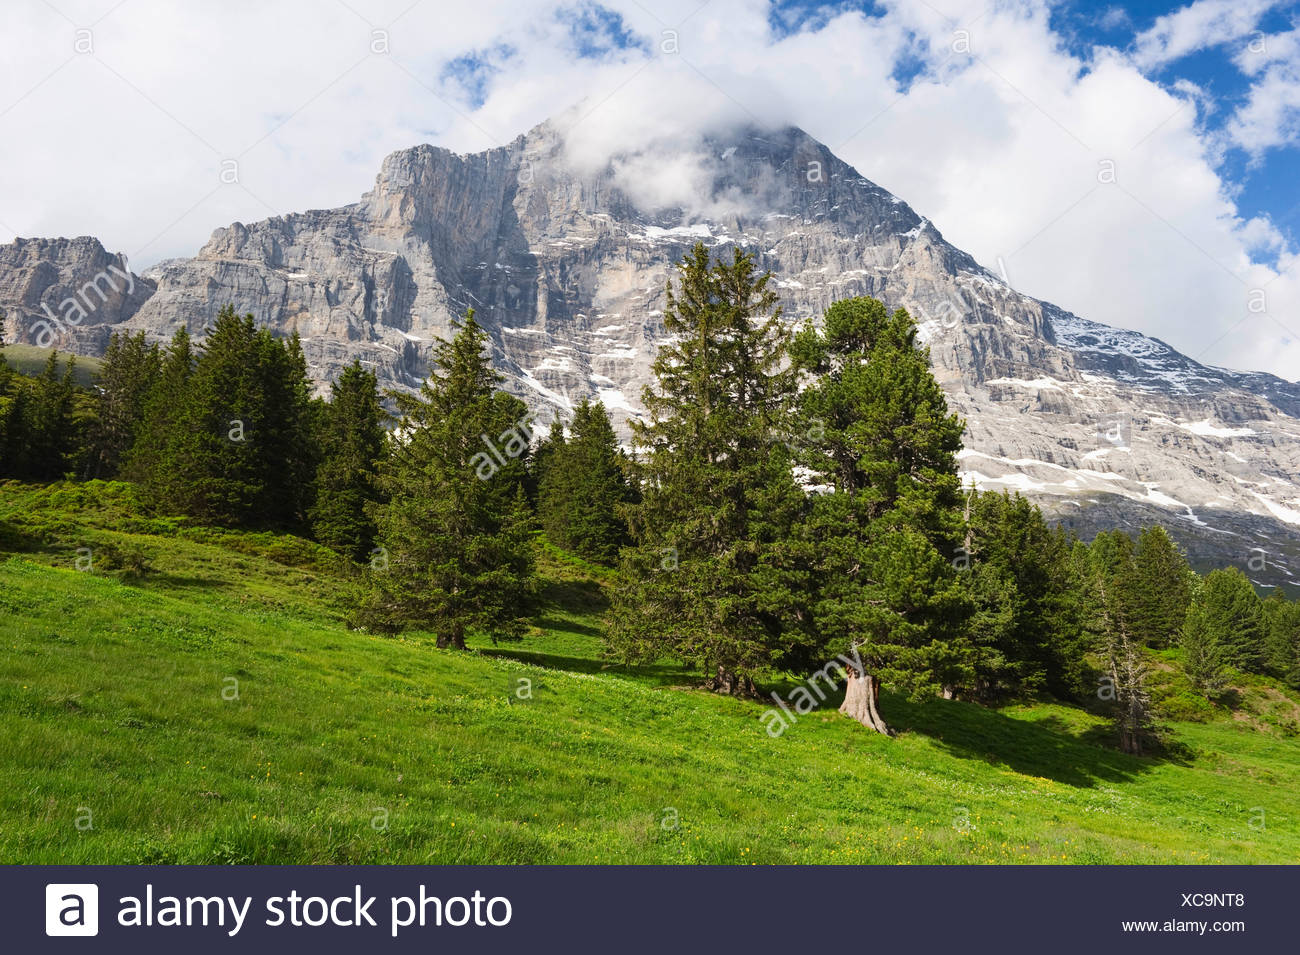 Protective forest at the foot of the Eiger, Grindelwald, Switzerland, Europe Stock Photo